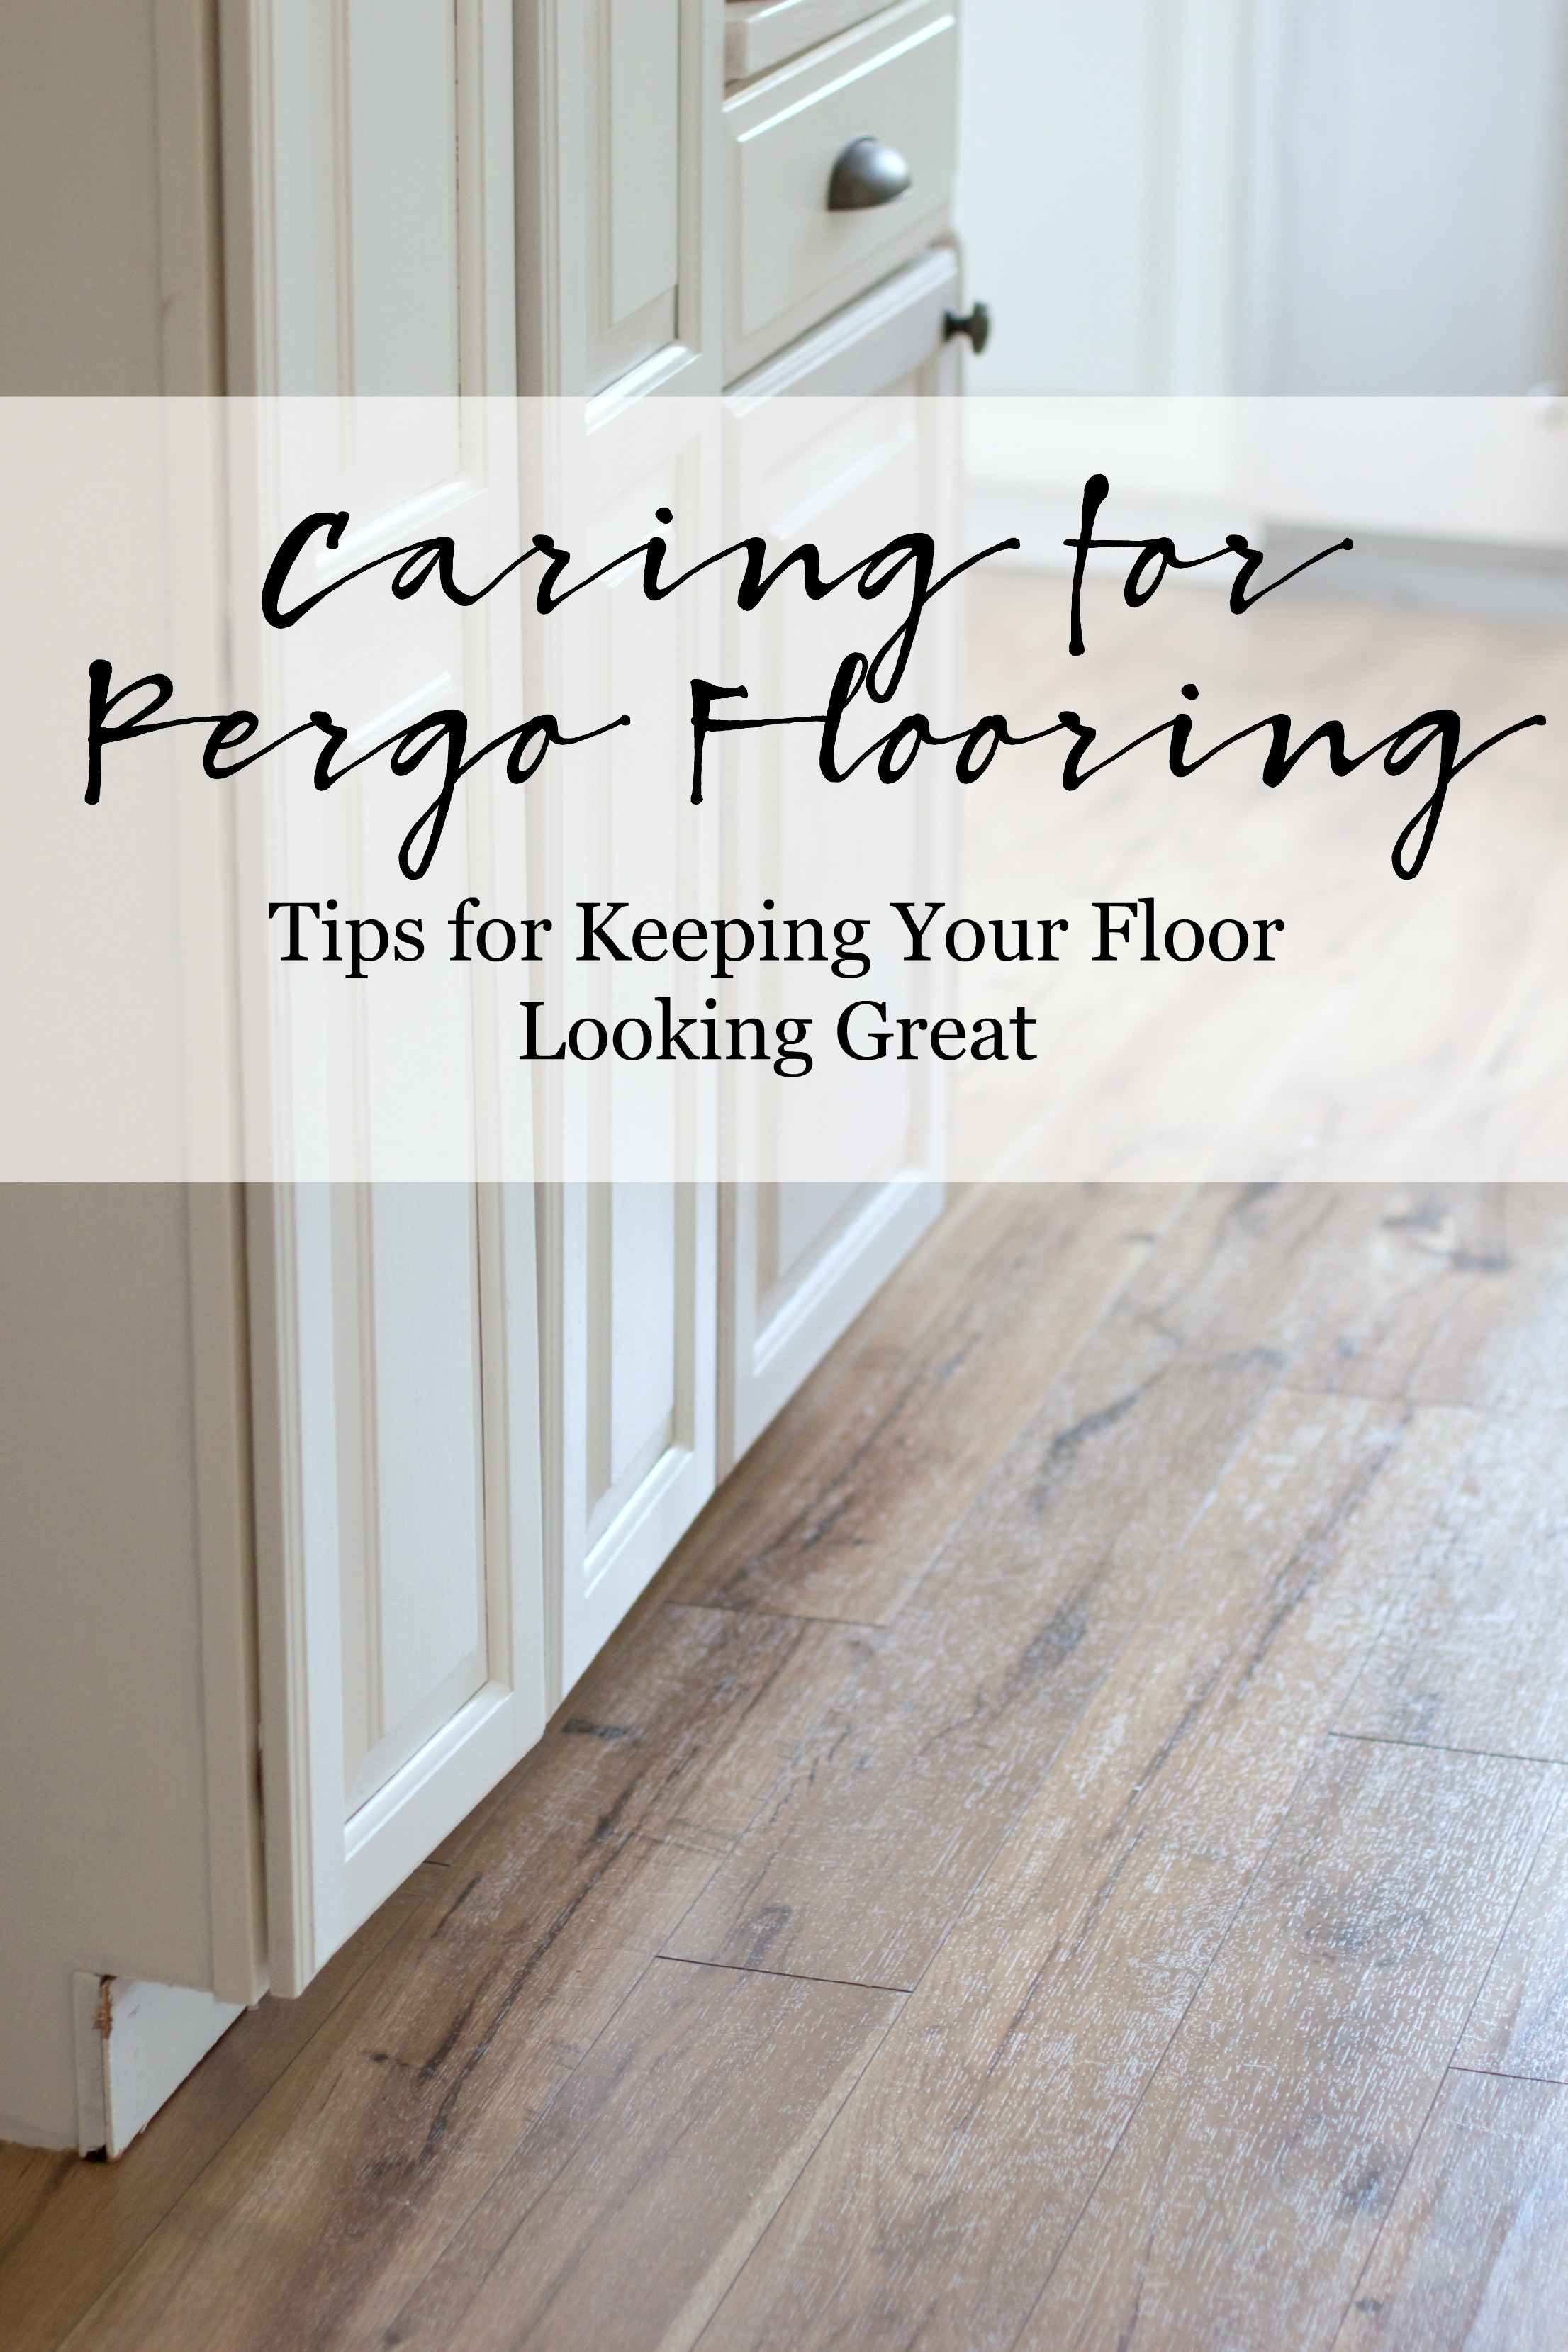 Home Caring For Pergo Flooring Lauren McBride - How much is pergo flooring